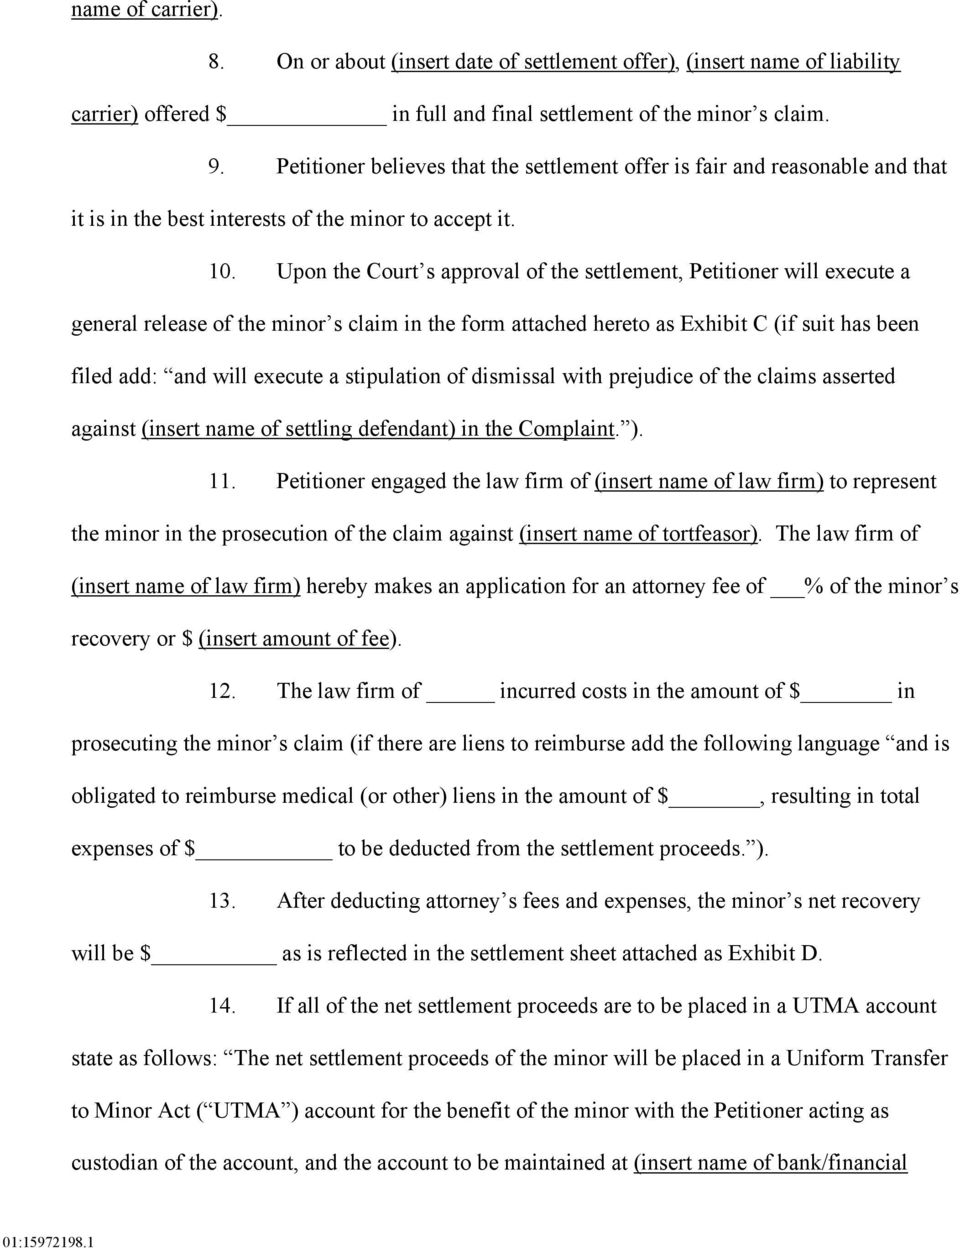 Upon the Court s approval of the settlement, Petitioner will execute a general release of the minor s claim in the form attached hereto as Exhibit C (if suit has been filed add: and will execute a